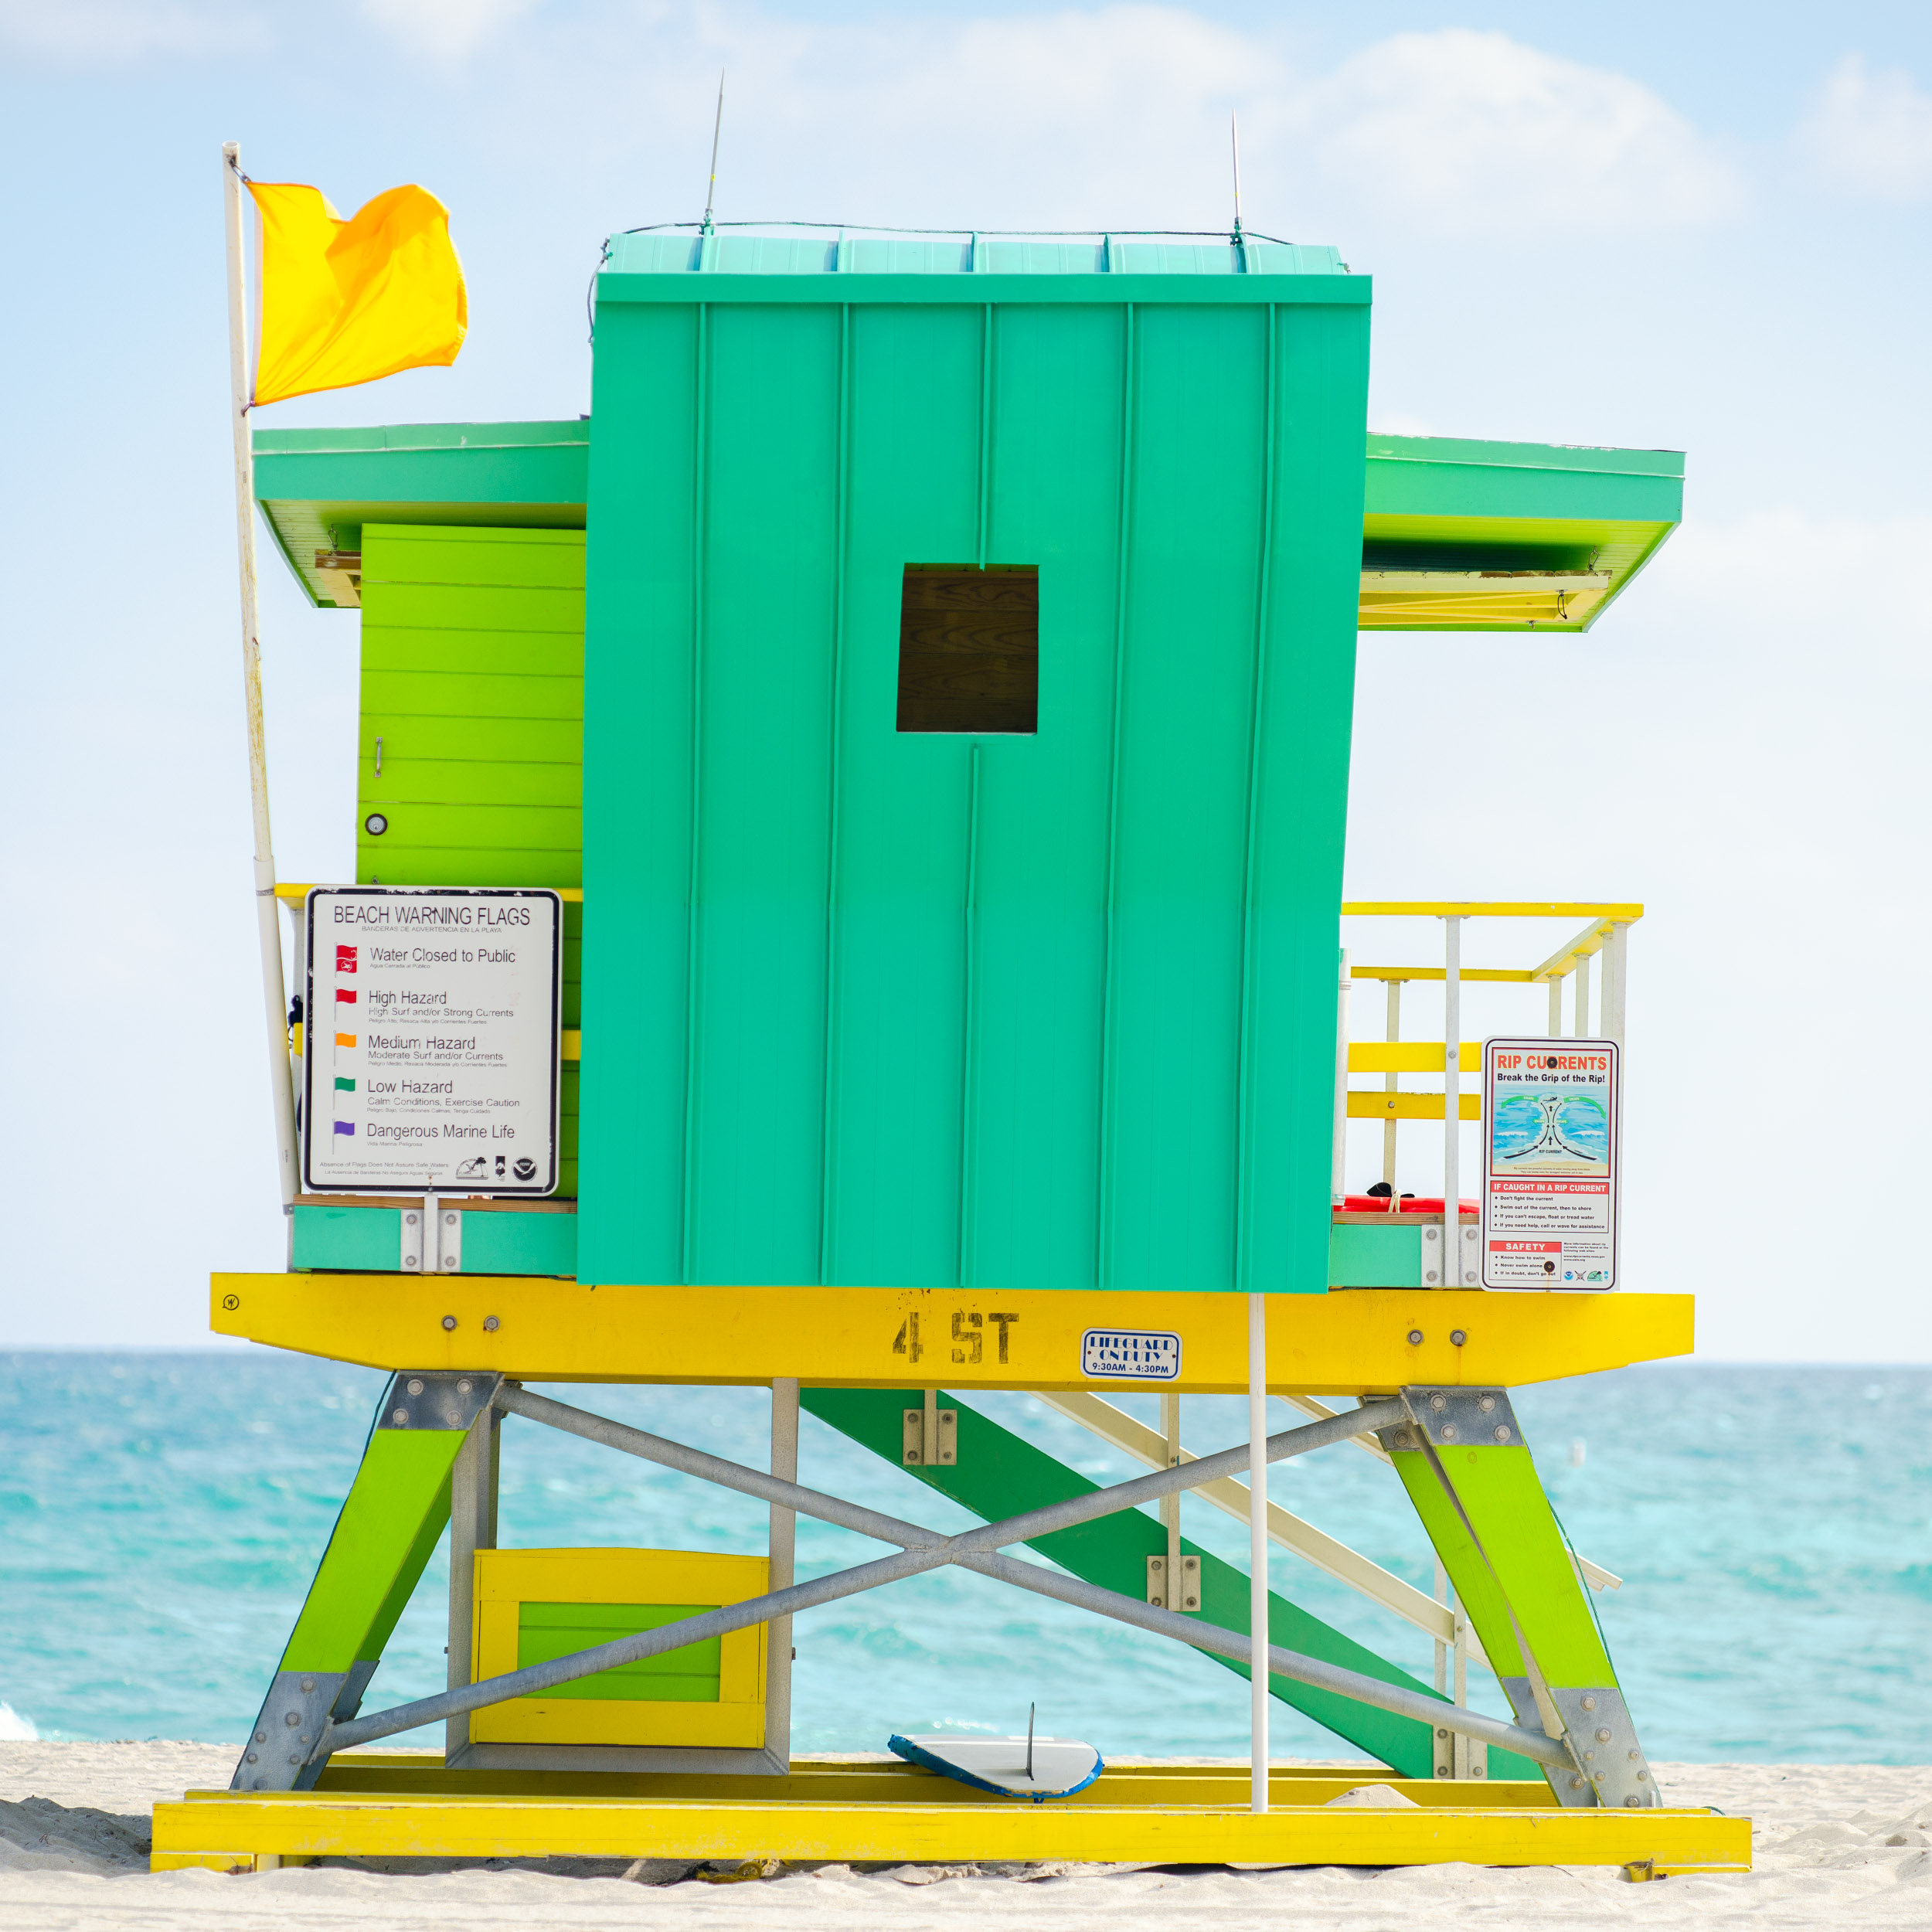 4th St. Miami Lifeguard Stand - Rear View